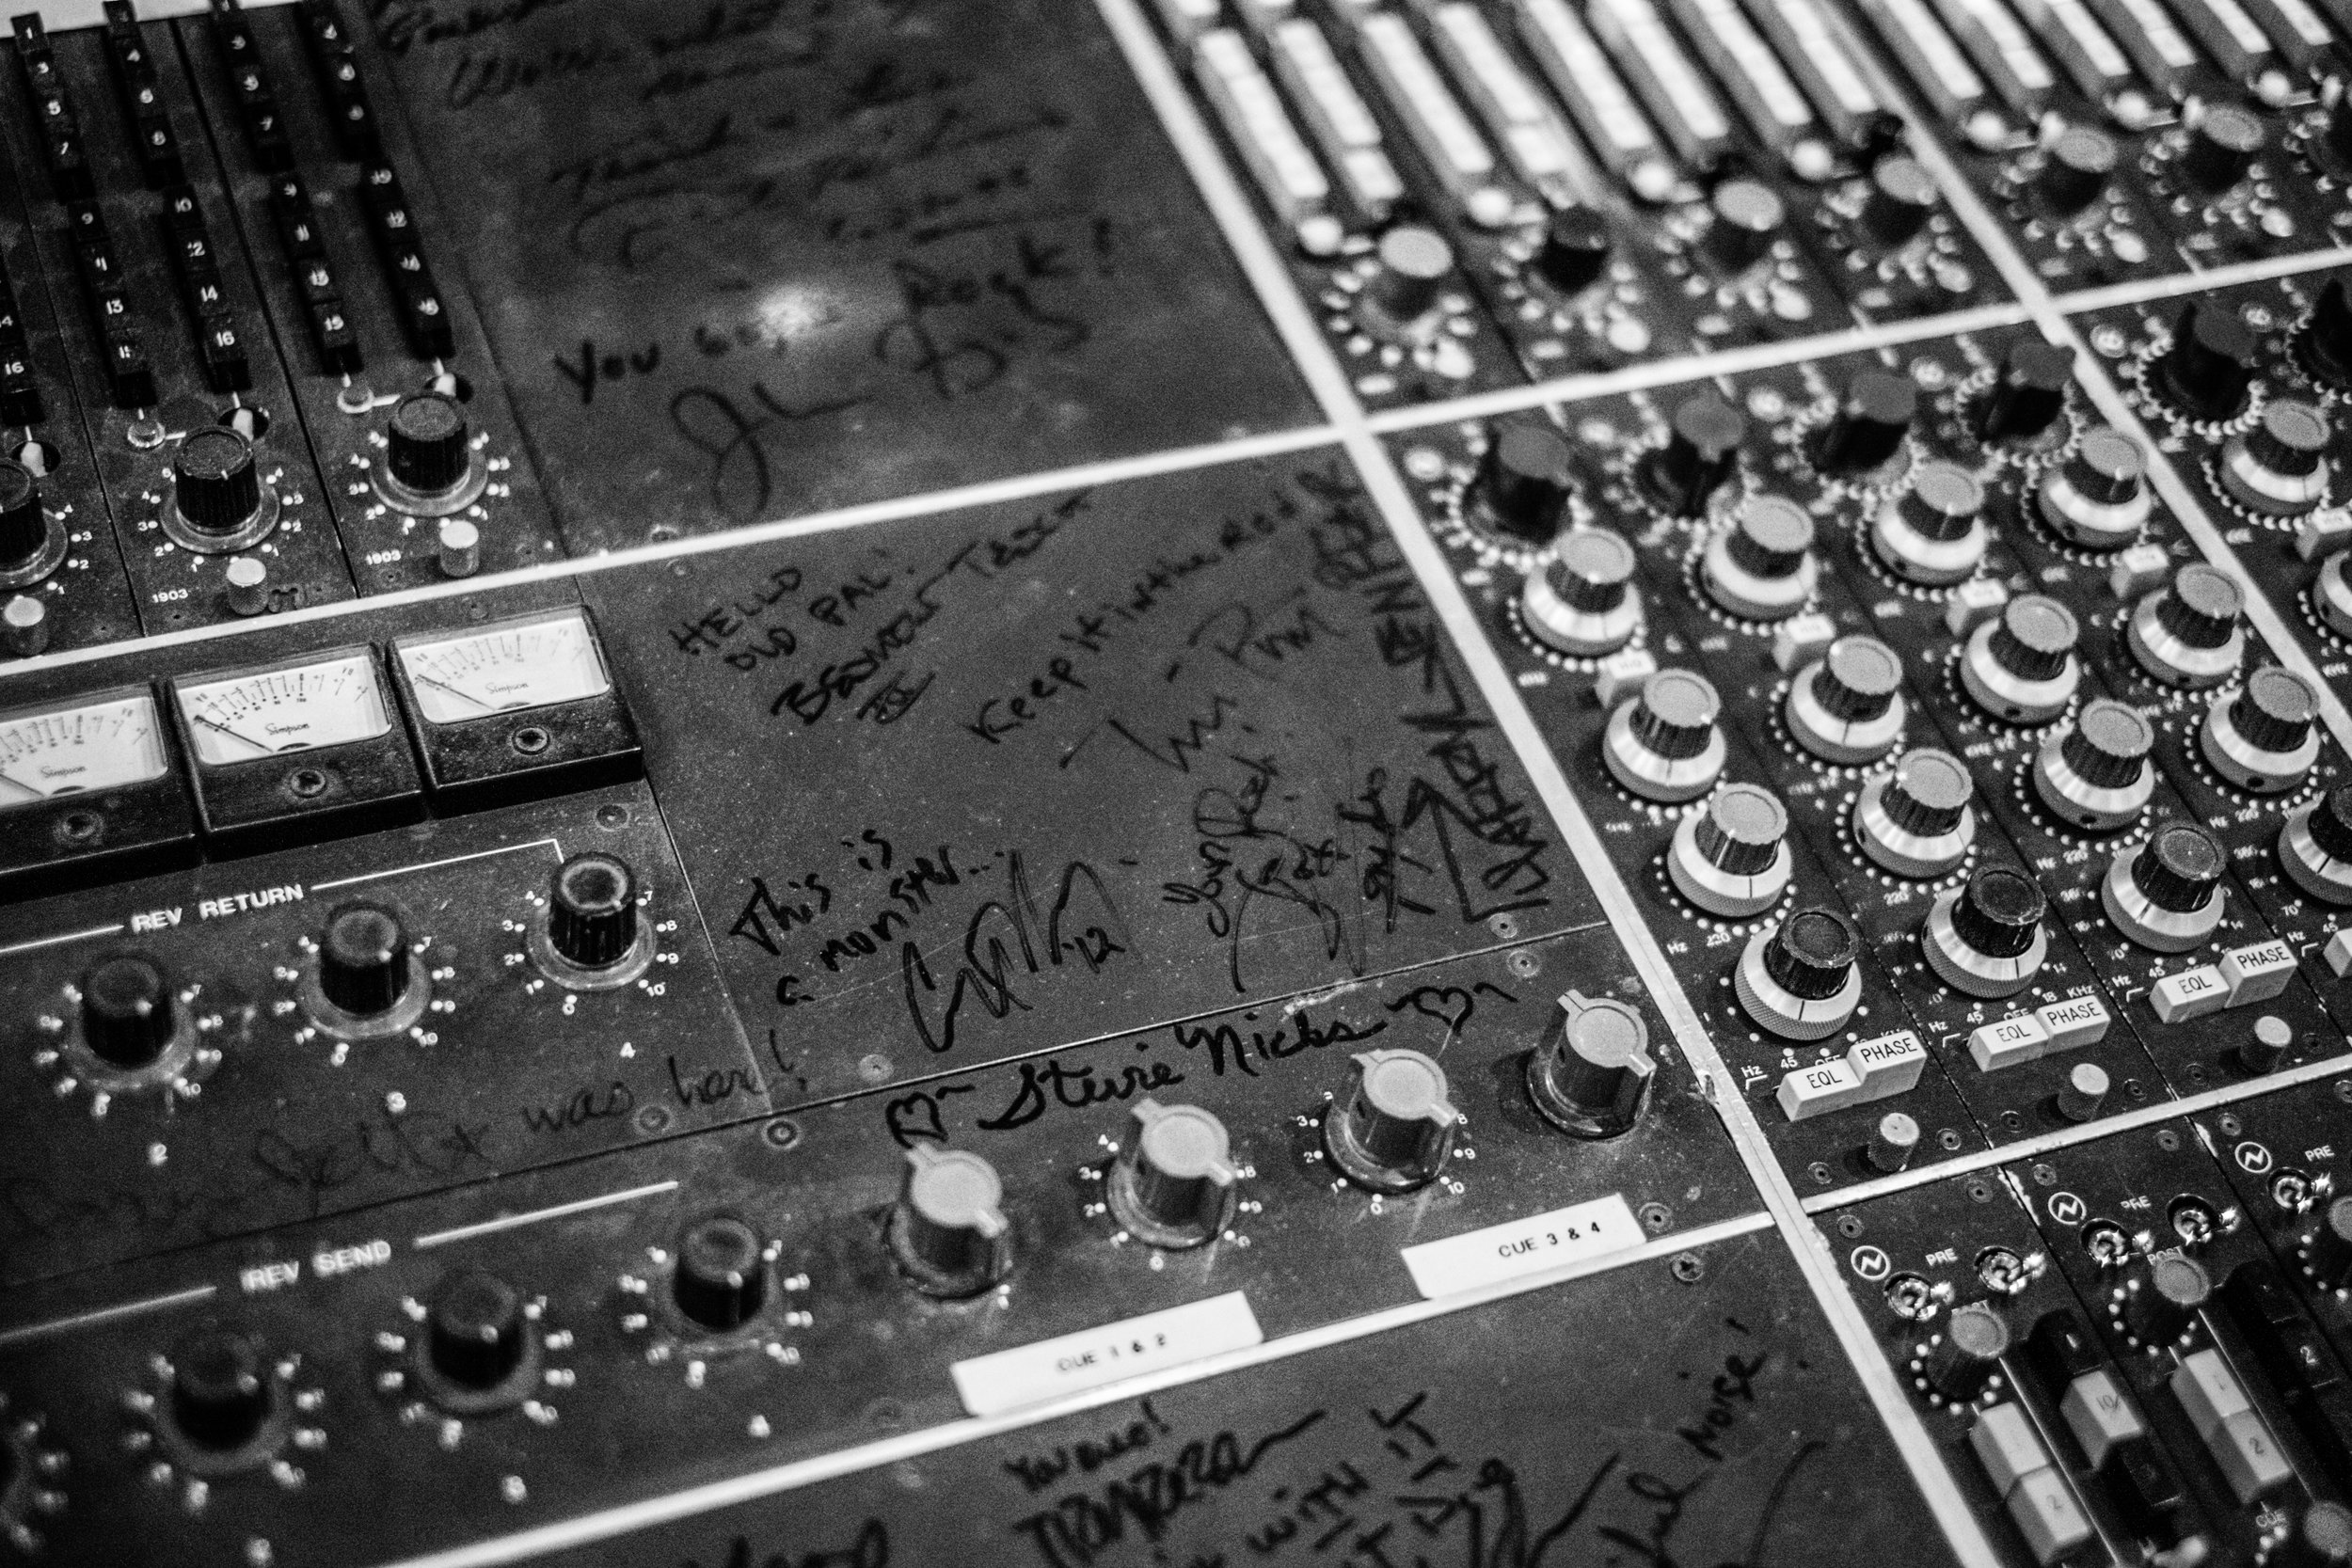 Foo Fighter's LA Studio